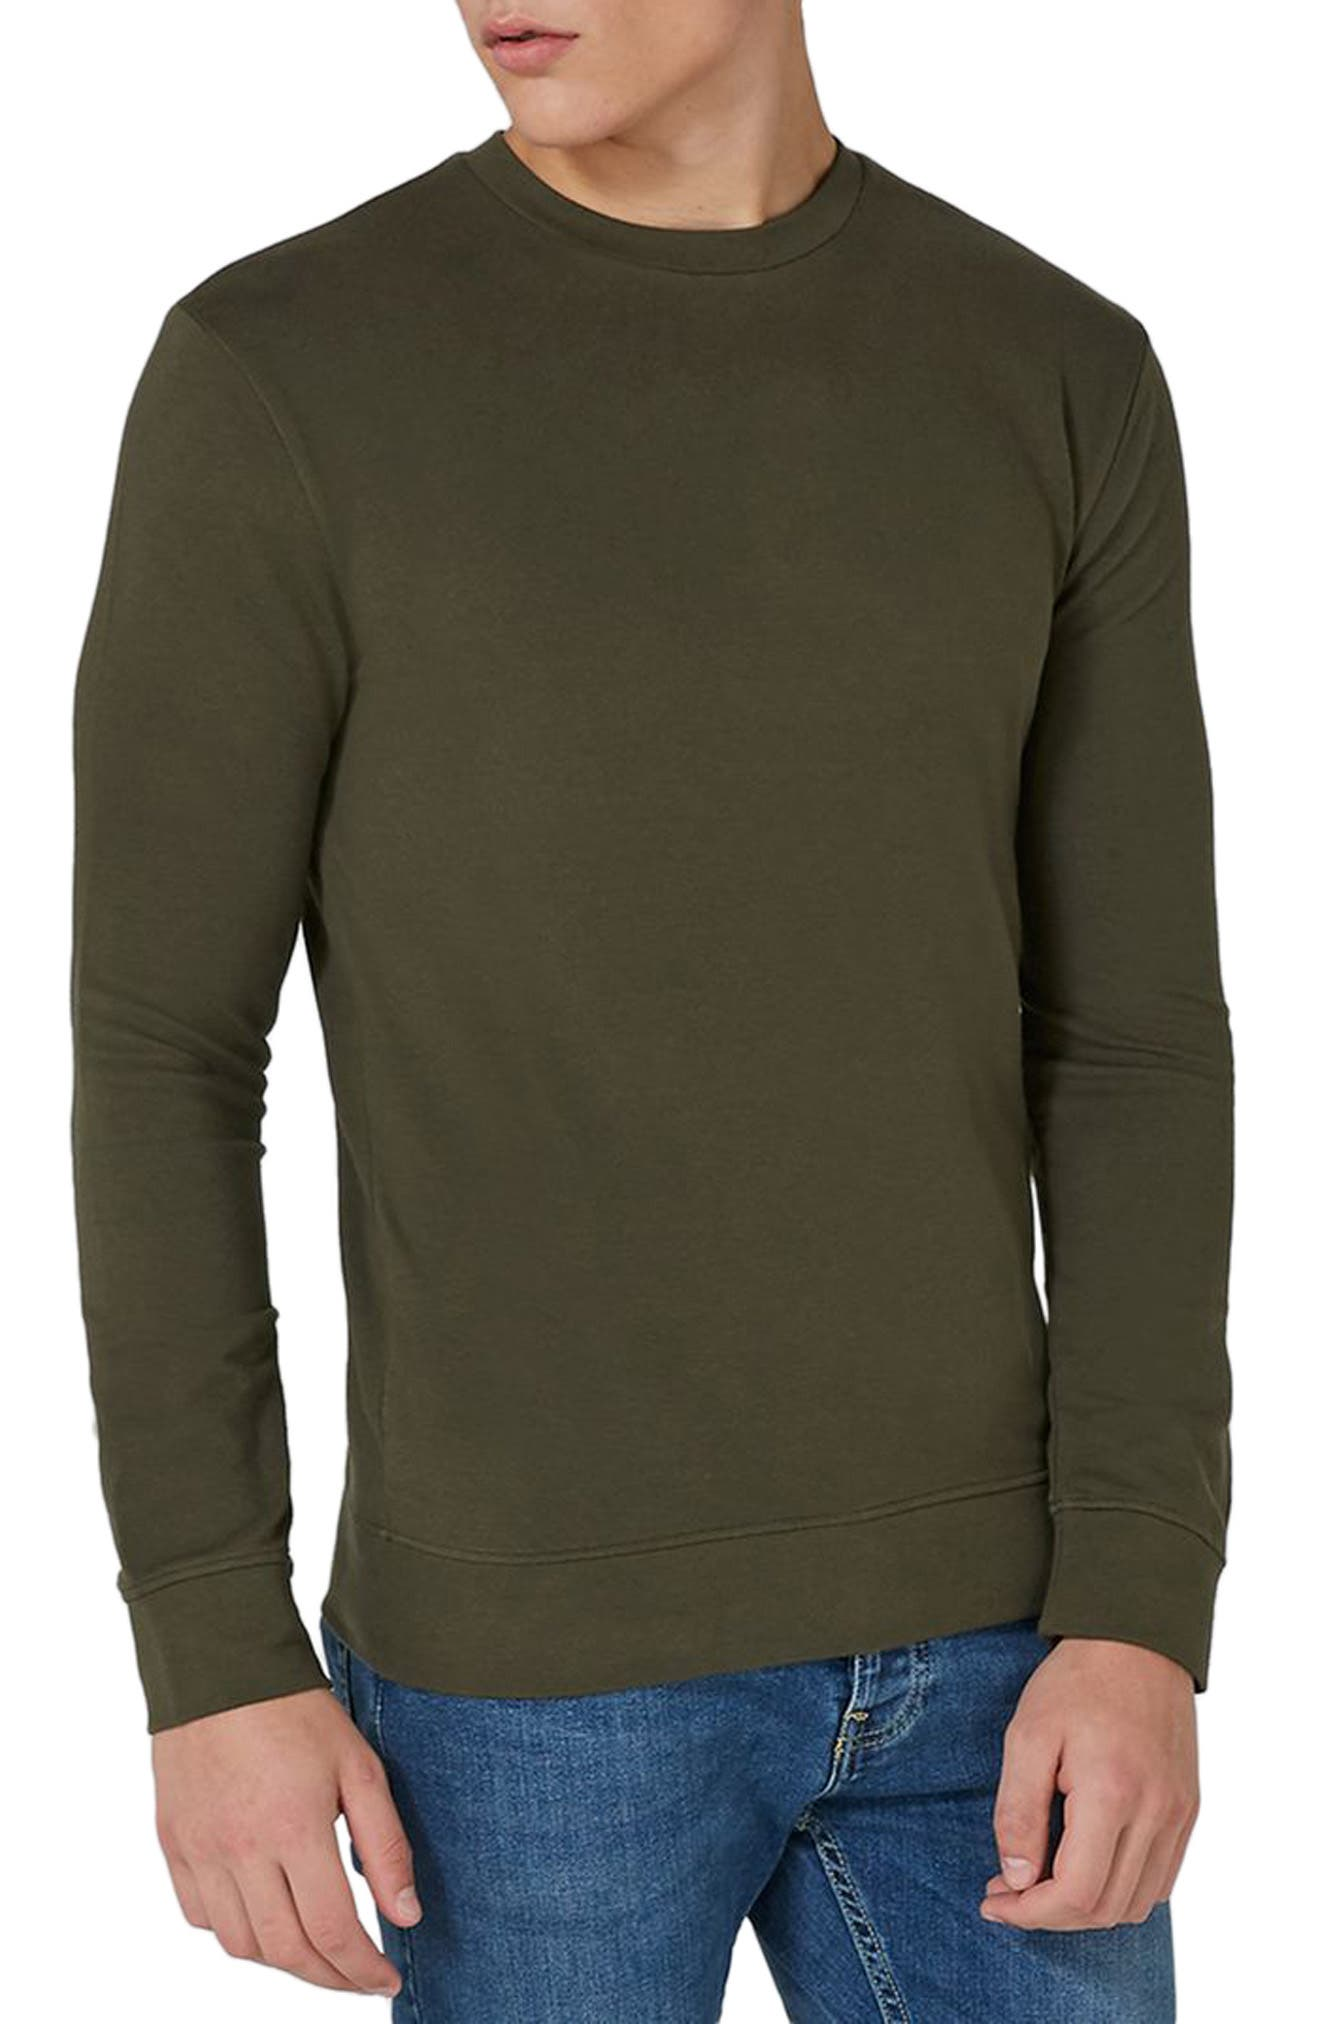 Ultra Muscle Fit Sweatshirt,                             Main thumbnail 1, color,                             Olive